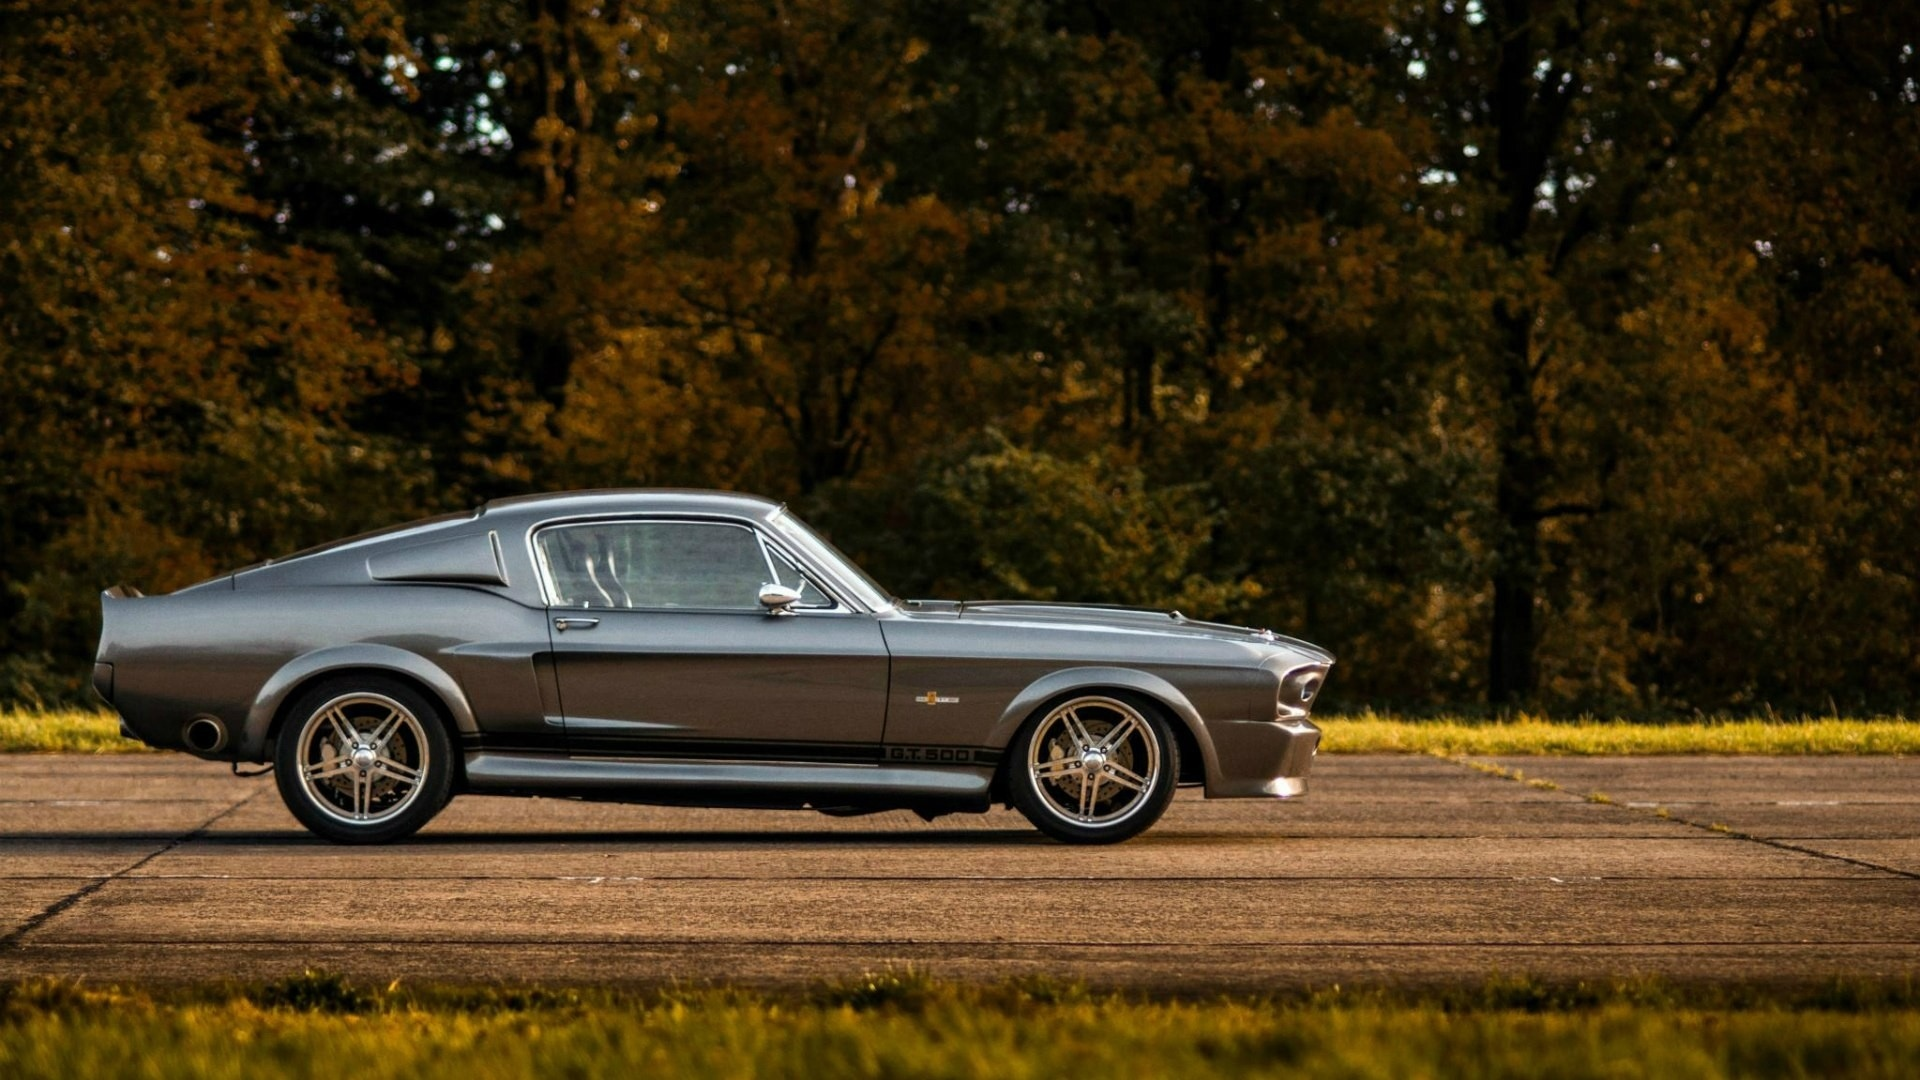 Original Mustang Shelby >> Ford Mustang Shelby GT500 wallpaper | 1920x1080 | 28536 | WallpaperUP